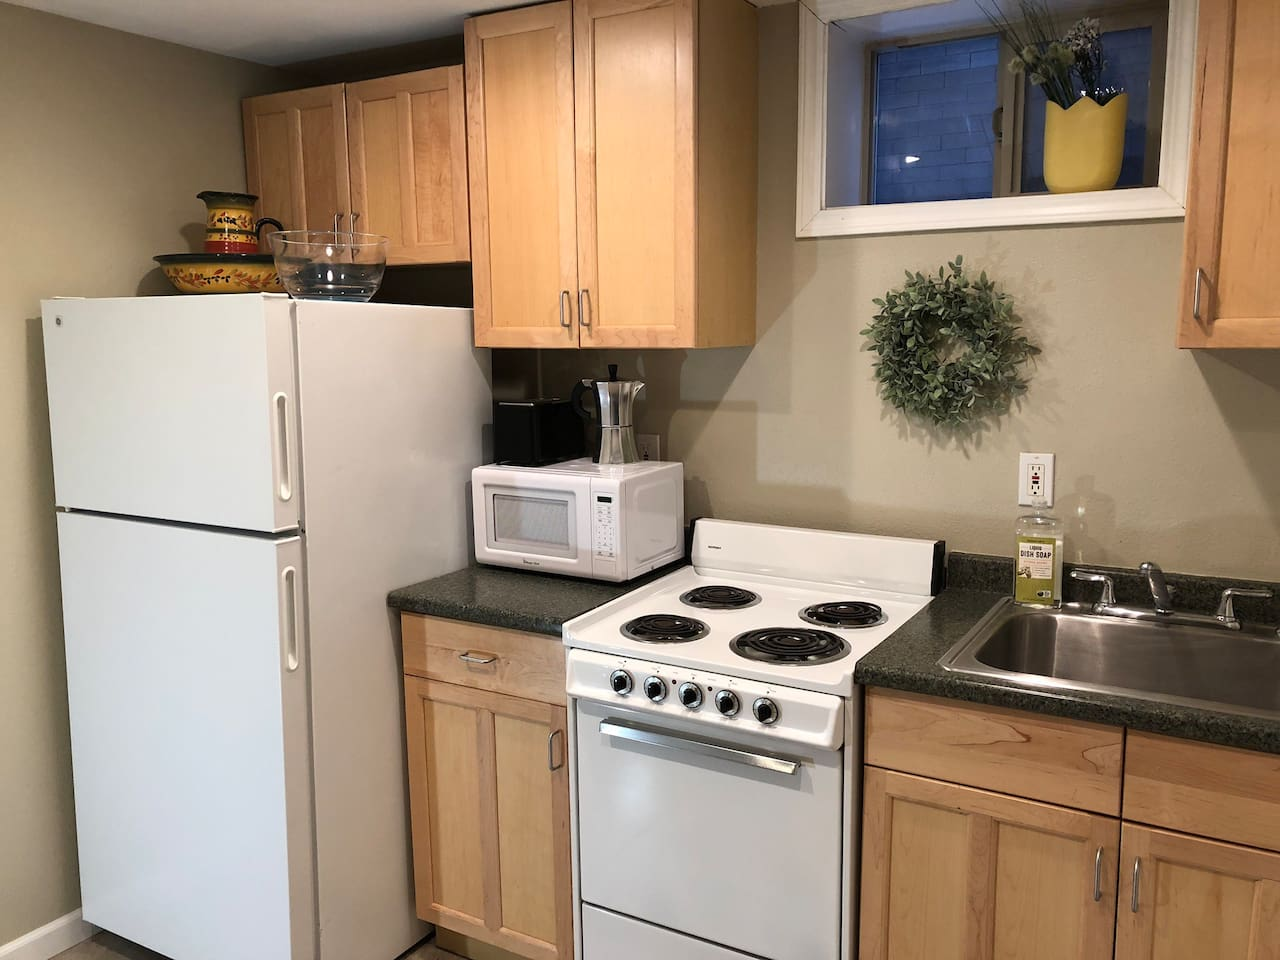 Fully stocked kitchen to meet your cooking needs. Coffee maker, microwave, and toaster oven.